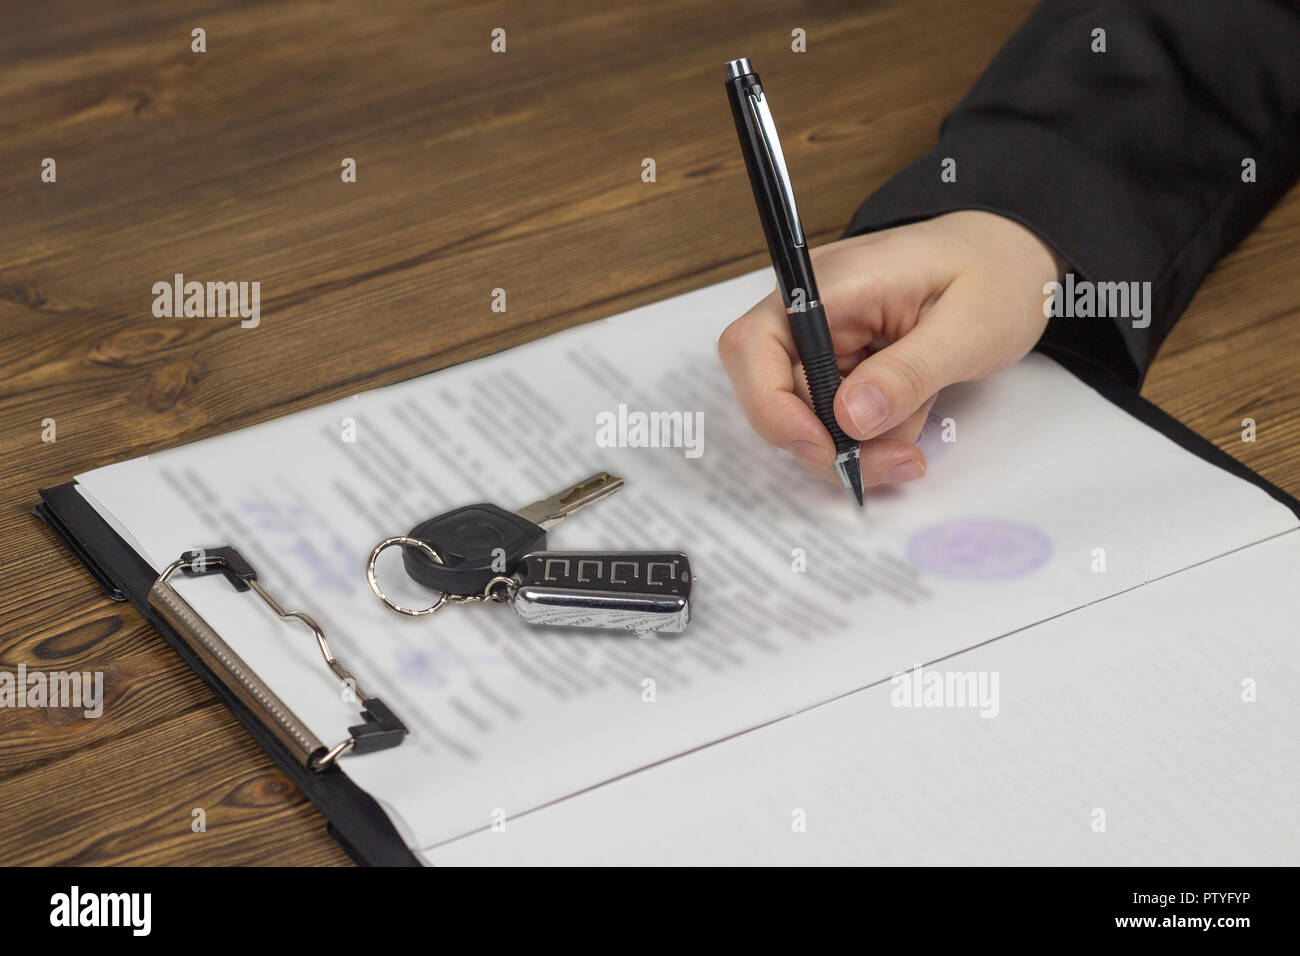 Buying a car, hand, keys, contract, seal, pen - Stock Image